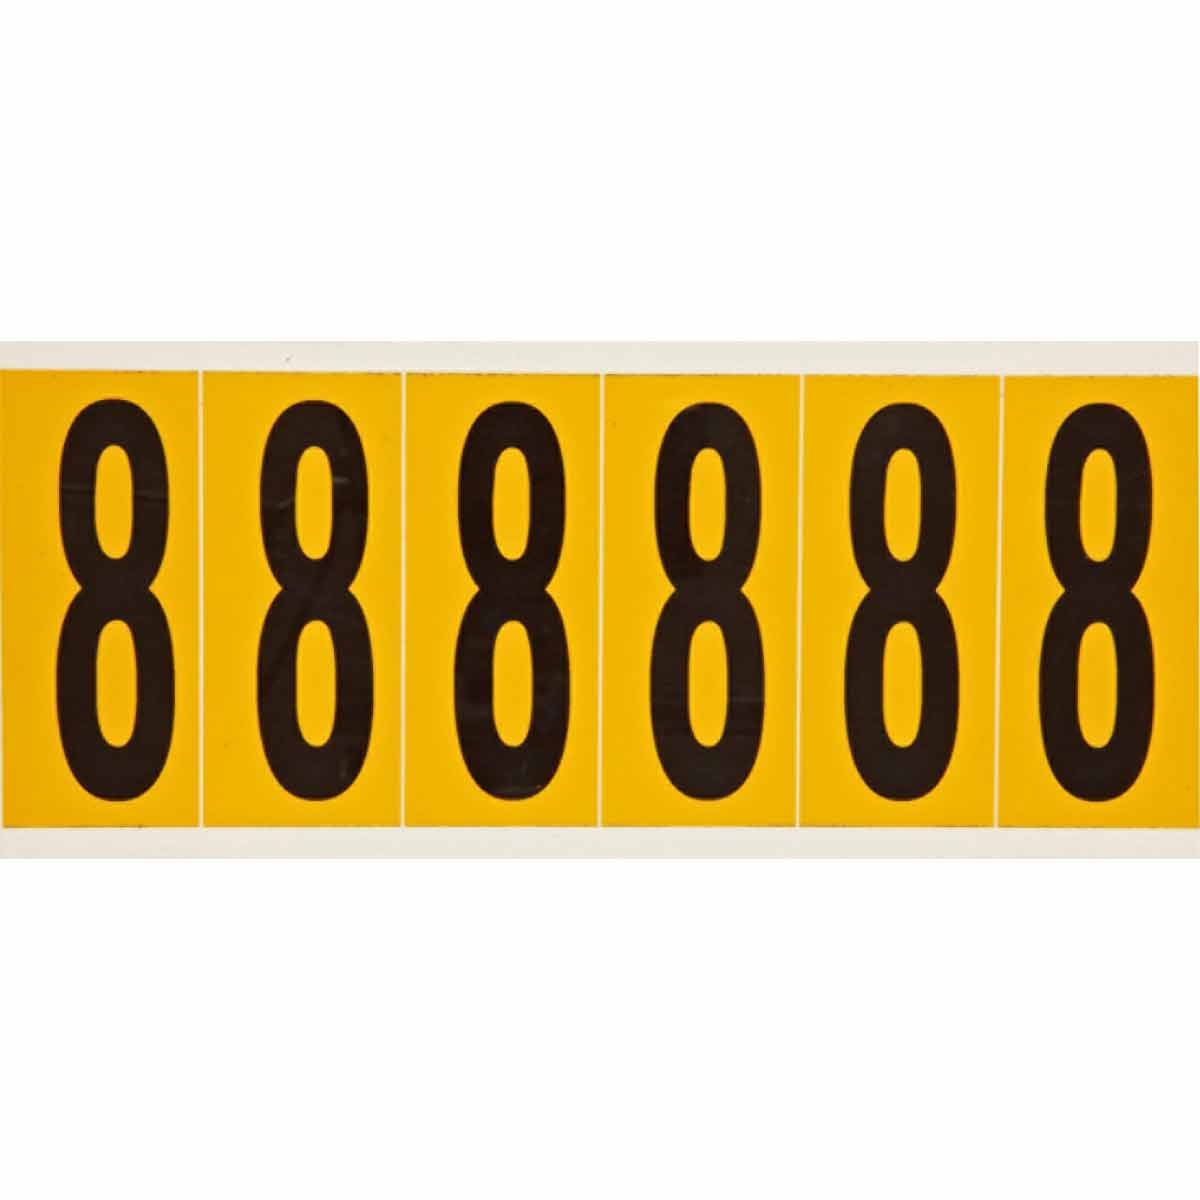 Brady® 1550-8 Non-Reflective Standard Number Label, 2.938 in H Black 8 Character, Yellow Background, B-946 Vinyl